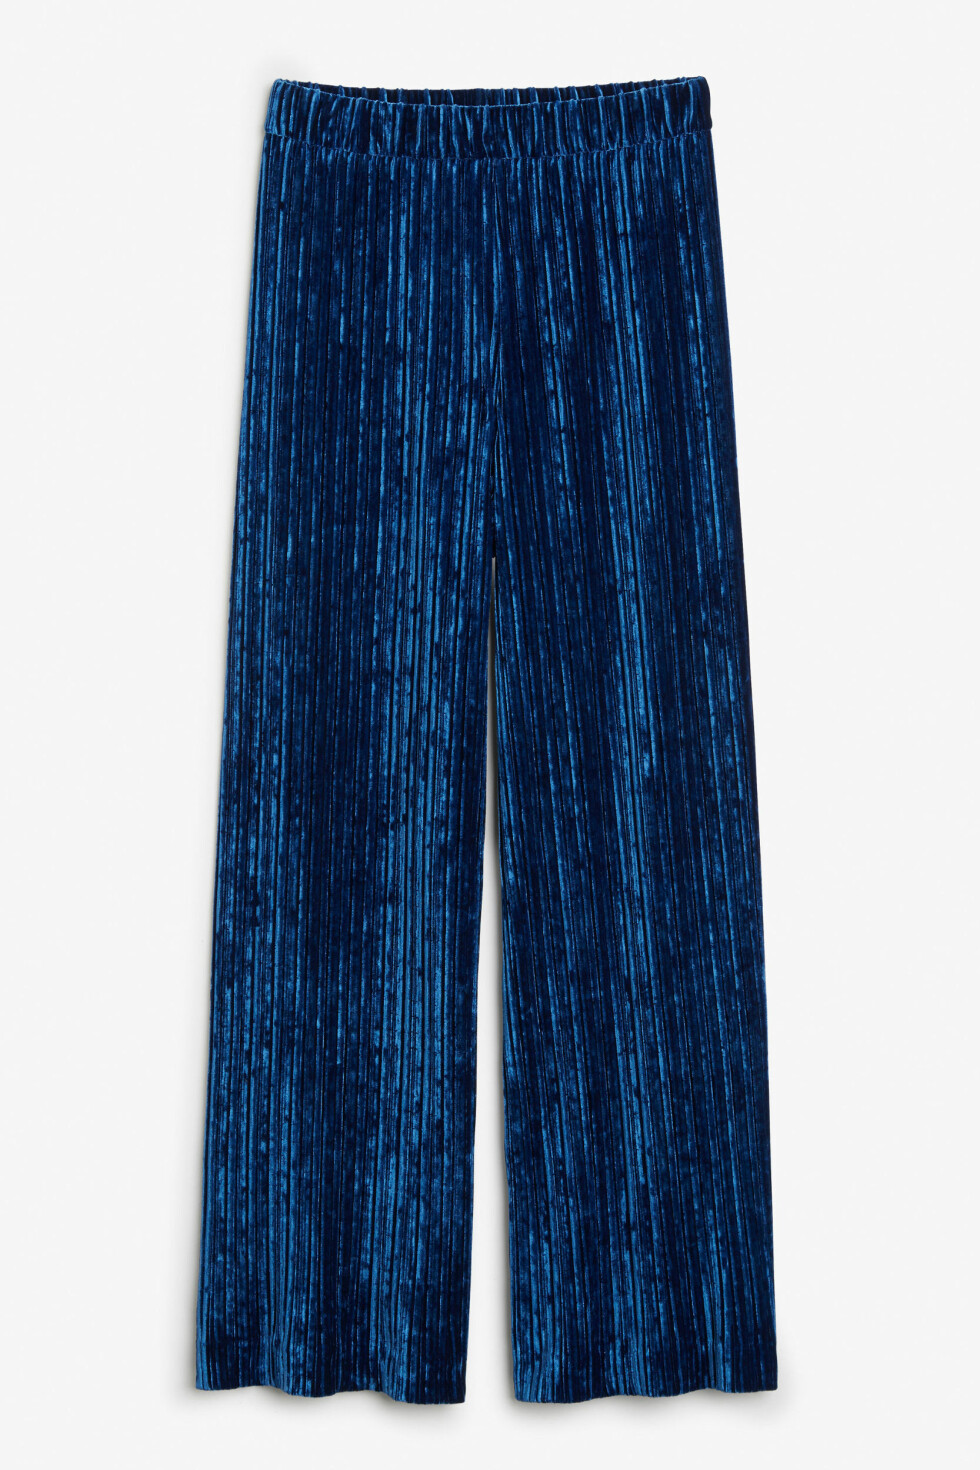 Bukse fra Monki |350,-|https://www.monki.com/en_sek/clothing/trousers-&-shorts/product.velvet-pleated-trousers-blue.0502751003.html